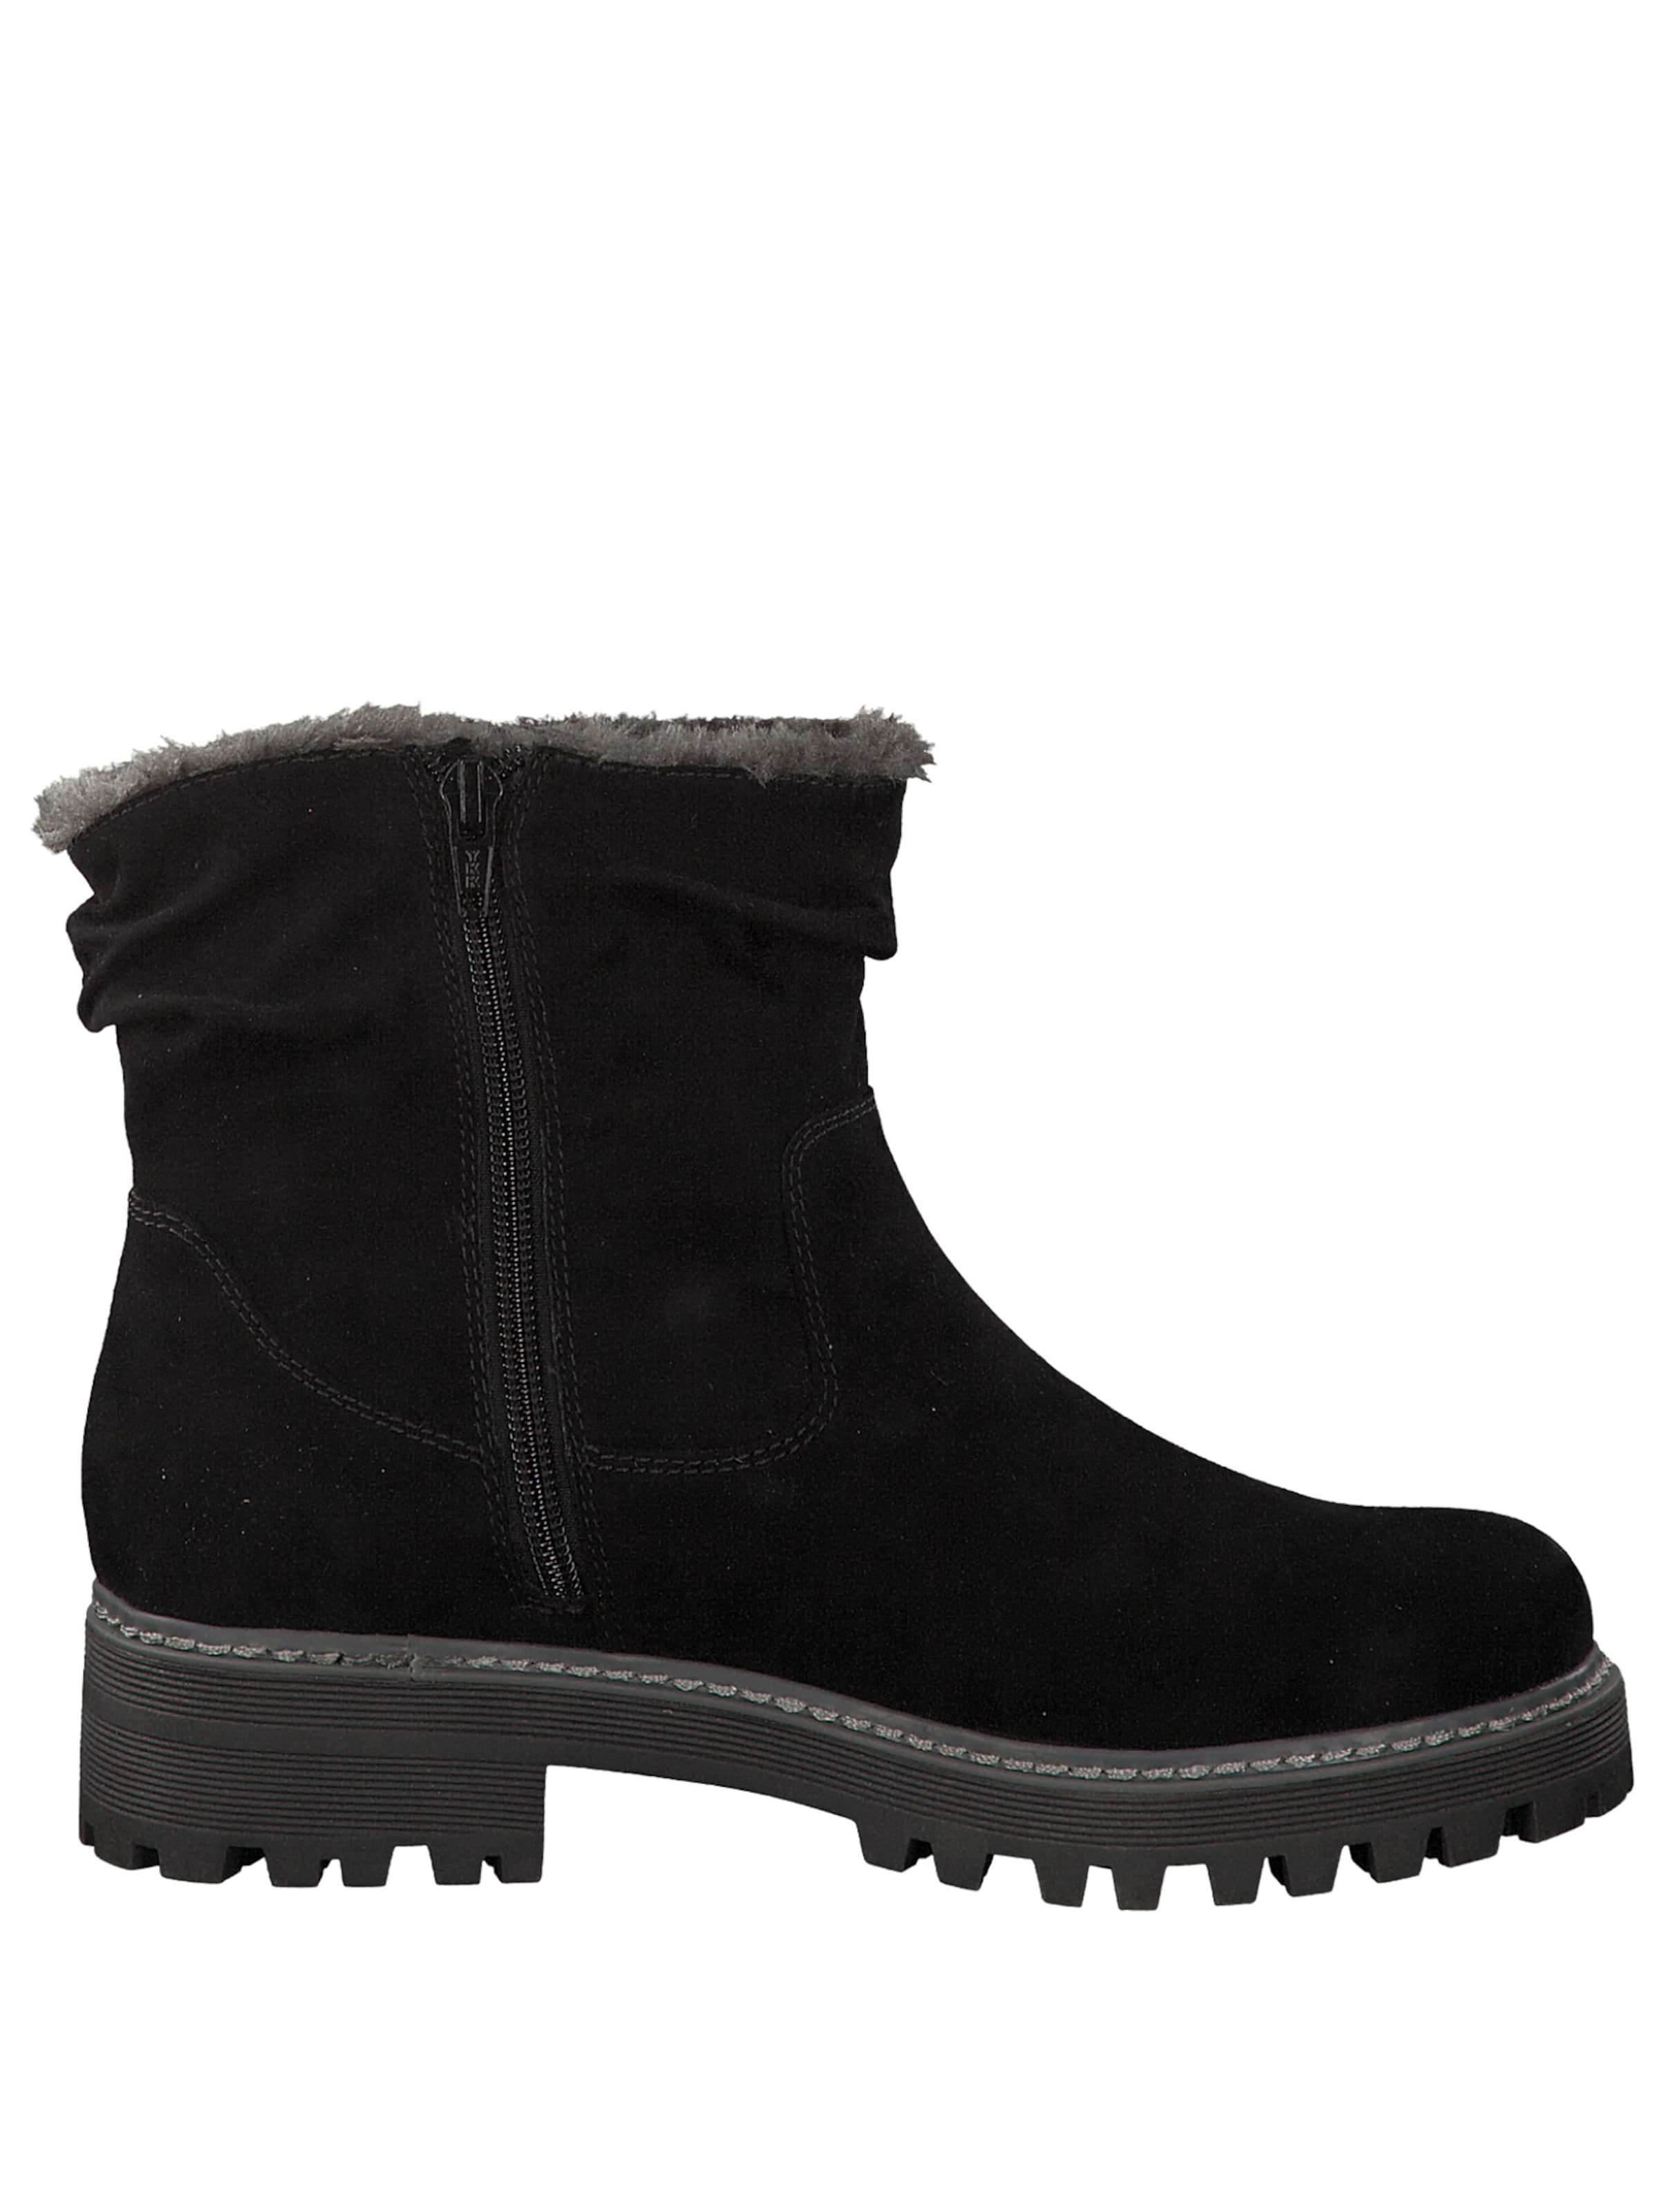 Bottines En oliver Red Label Noir S iuTXZOPkw